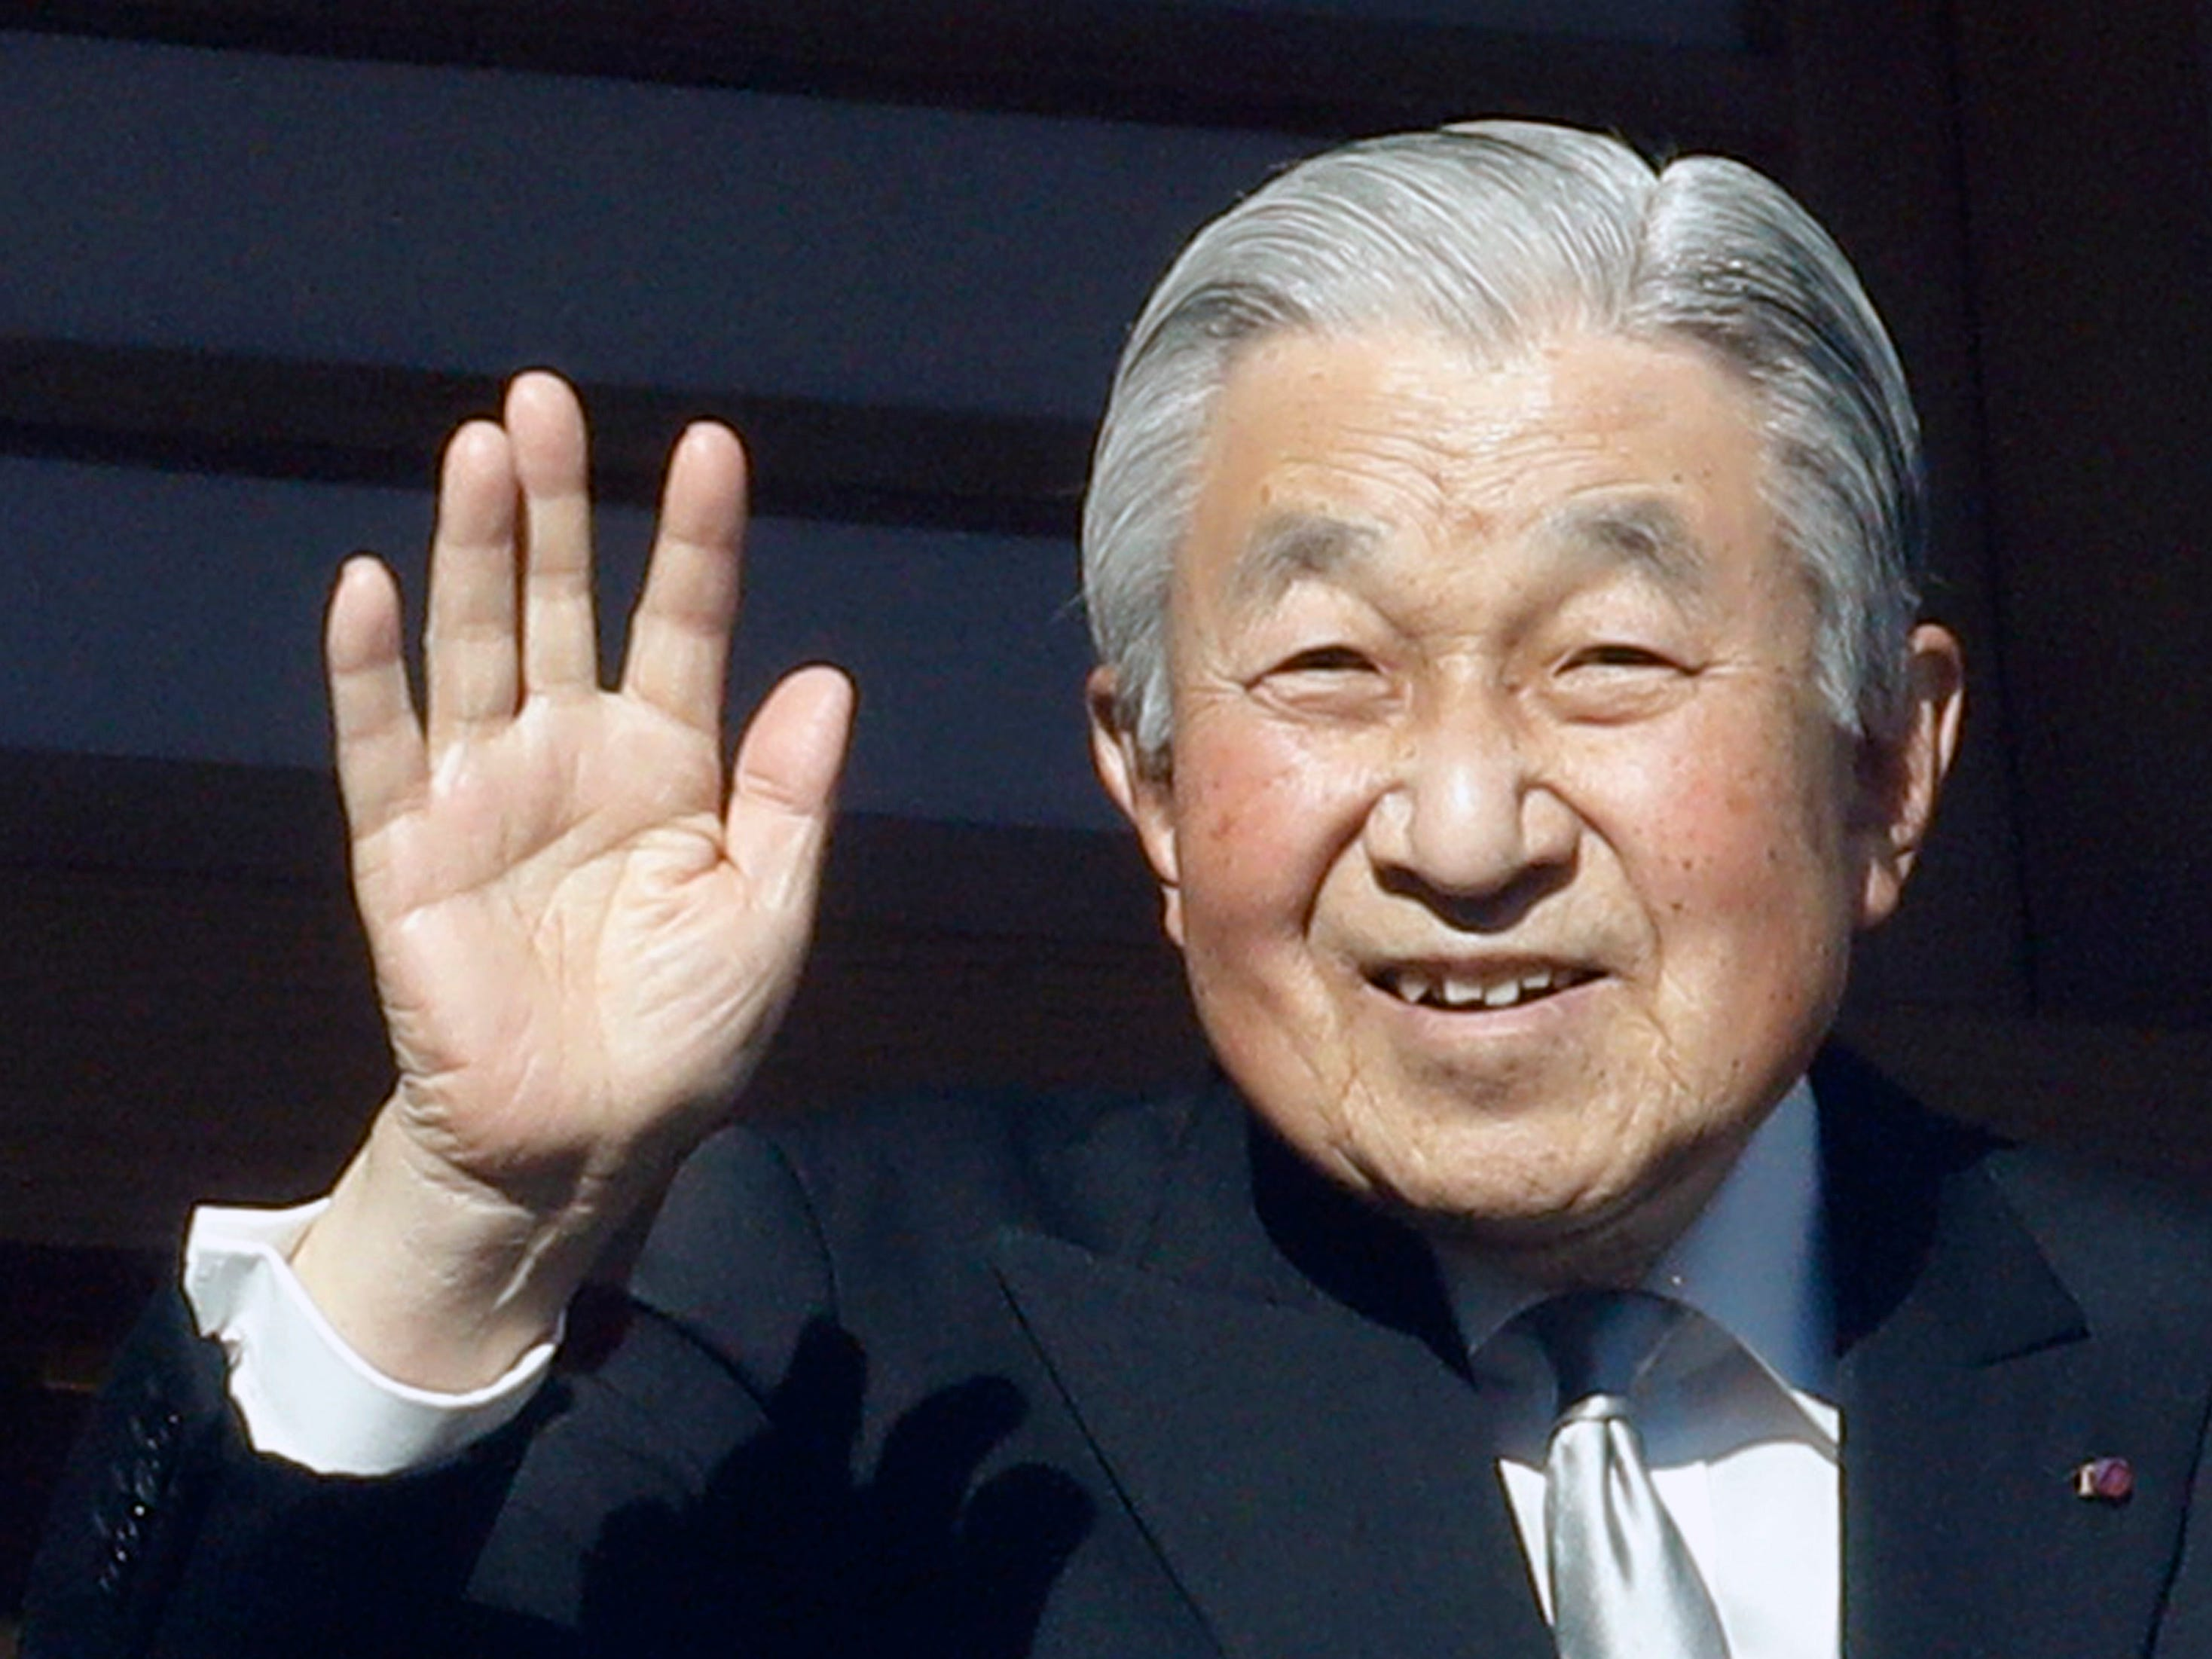 Japan's Emperor Akihito waves to well-wishers from the bullet-proofed balcony during his New Year's public appearance with his family members at Imperial Palace in Tokyo Wednesday, Jan. 2, 2019.